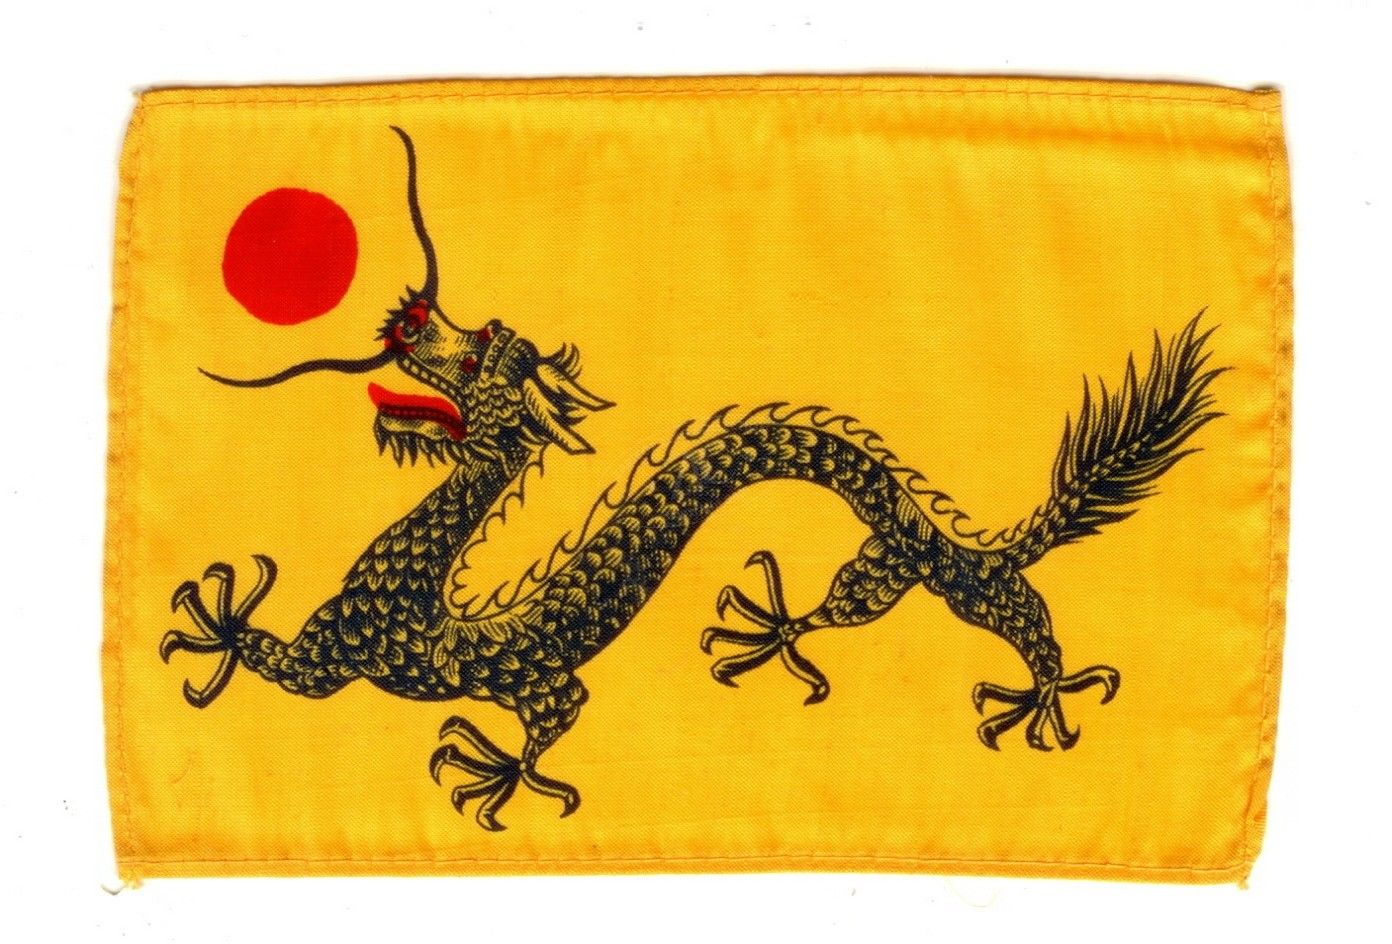 National Flag Of Imperial China This Striking Small Silk Dragon Flag Was The National Flag Of Imperial China This Version Of The National Flag Was Created In